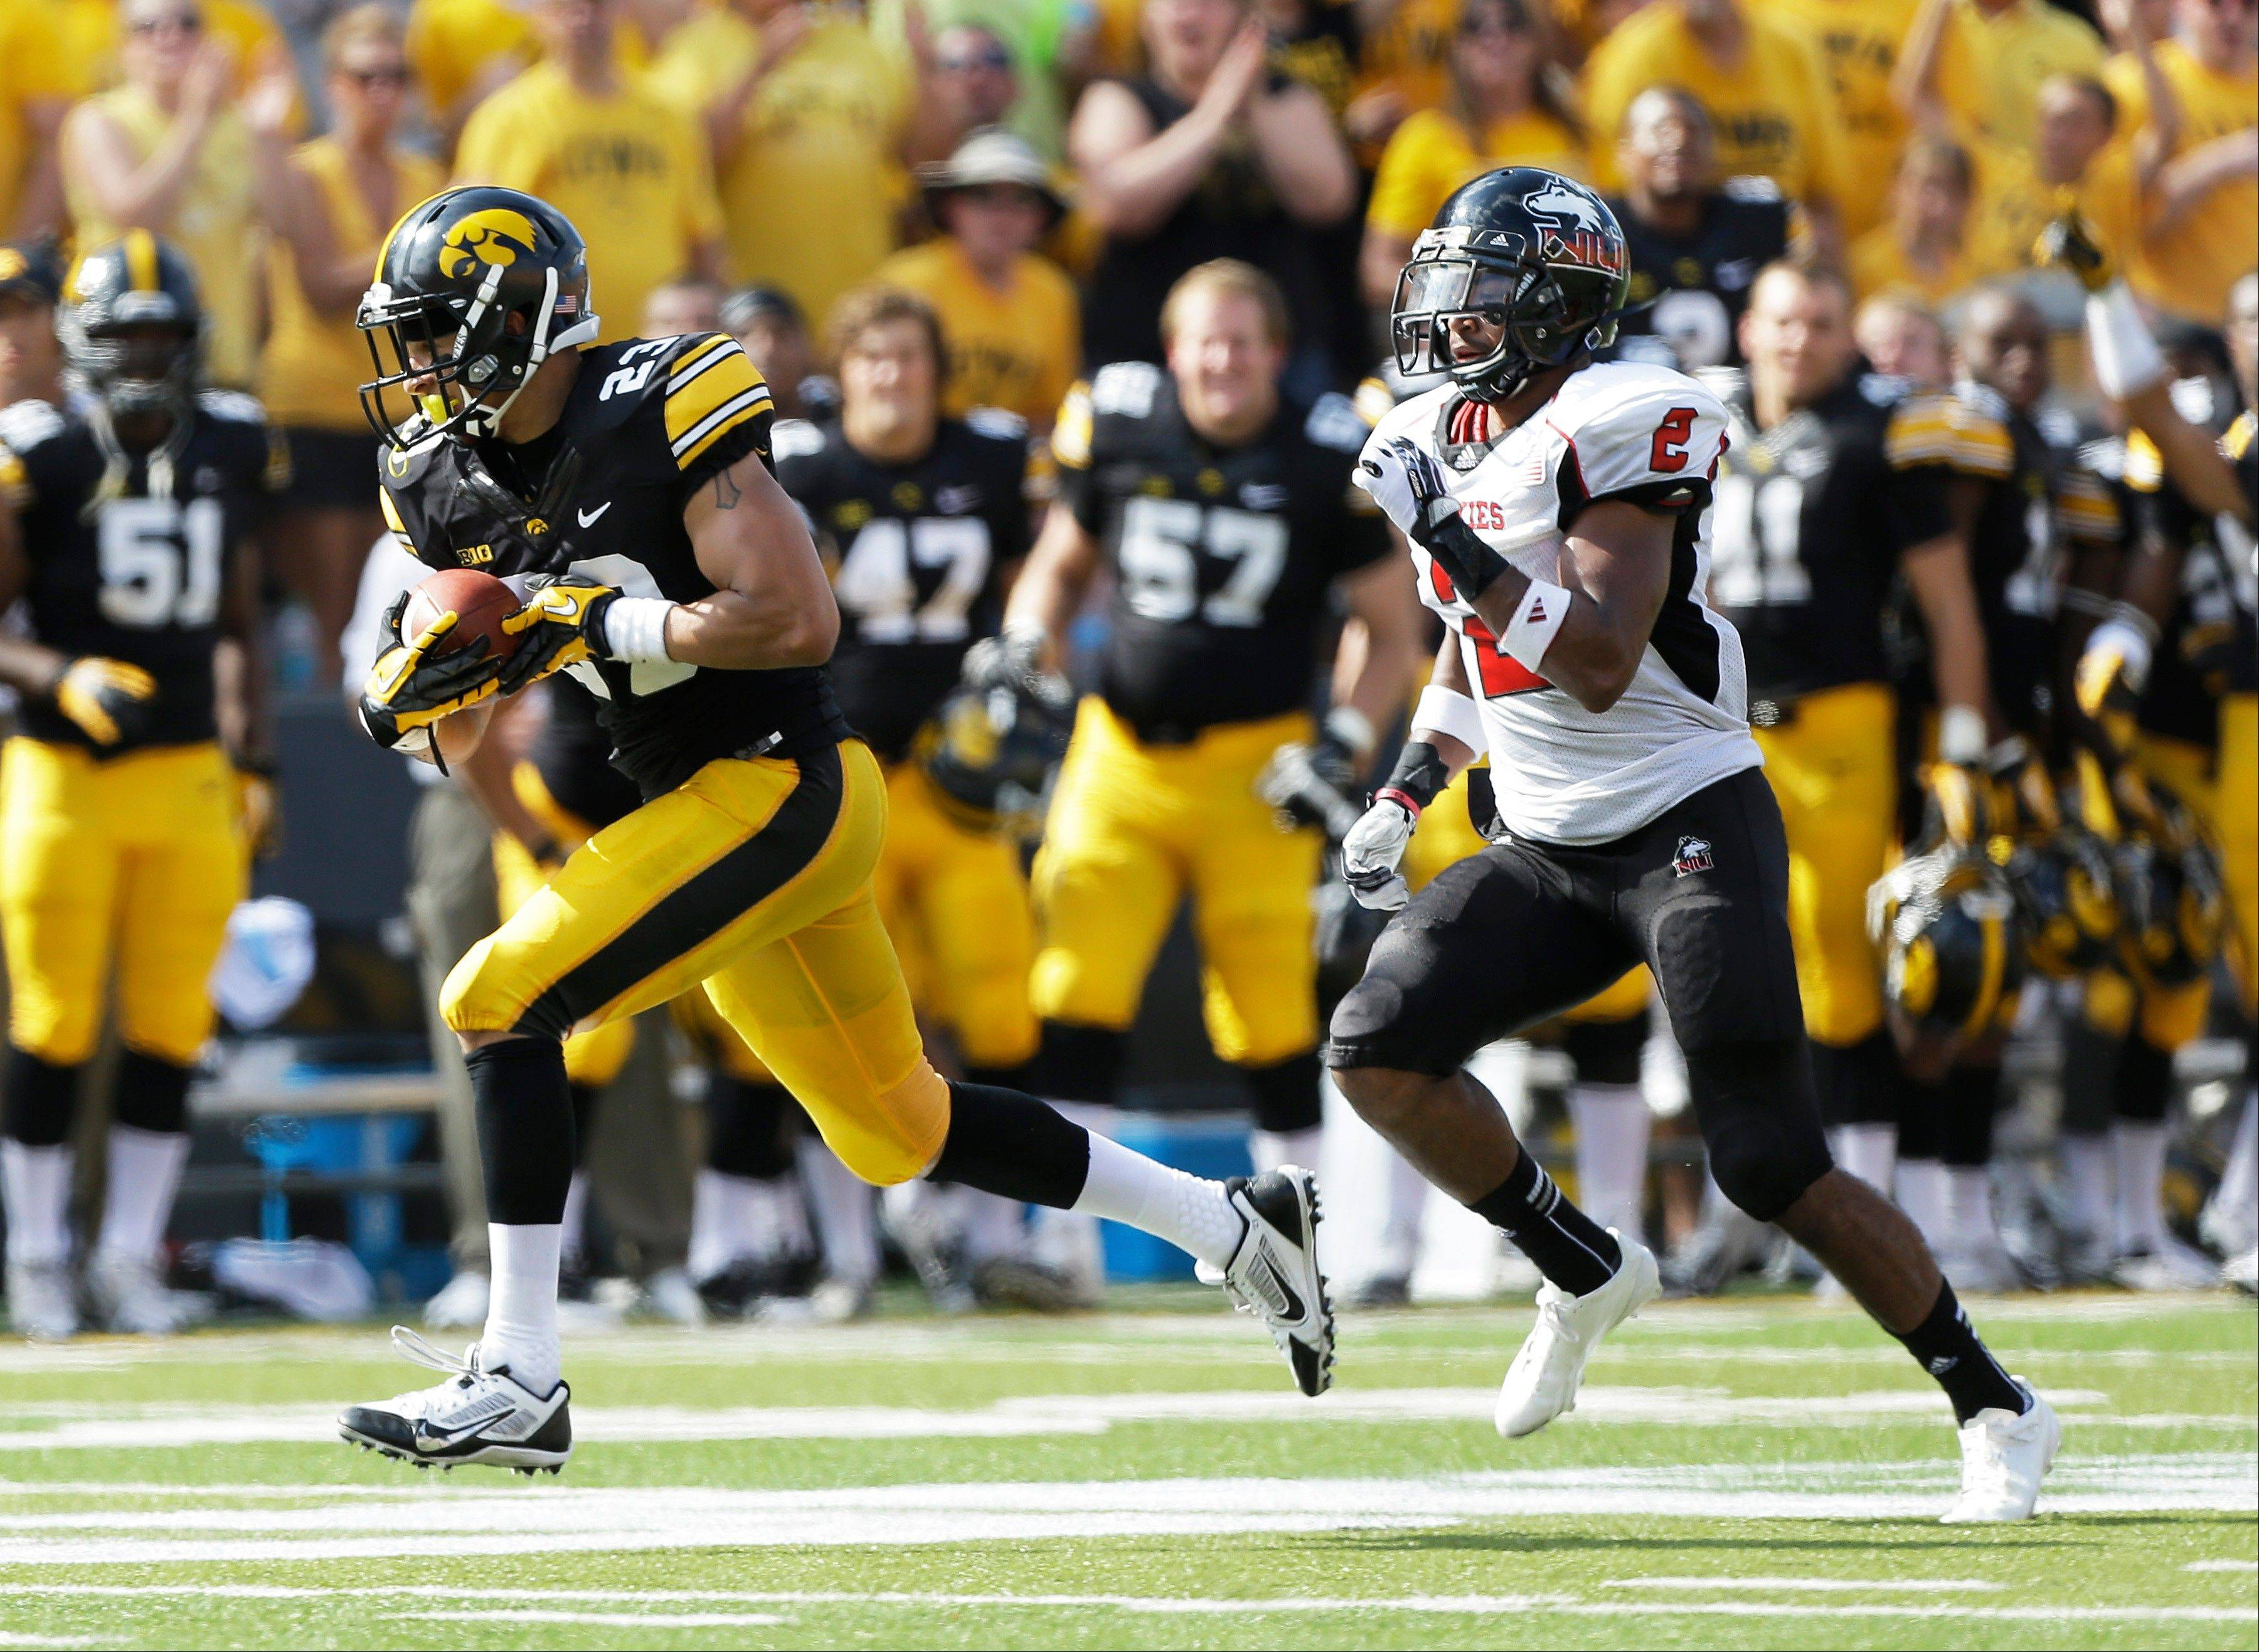 Iowa wide receiver Jordan Cotton, left, runs from Northern Illinois cornerback Sean Evans after catching a 53-yard pass during the first half of an NCAA college football game Saturday in Iowa City, Iowa.